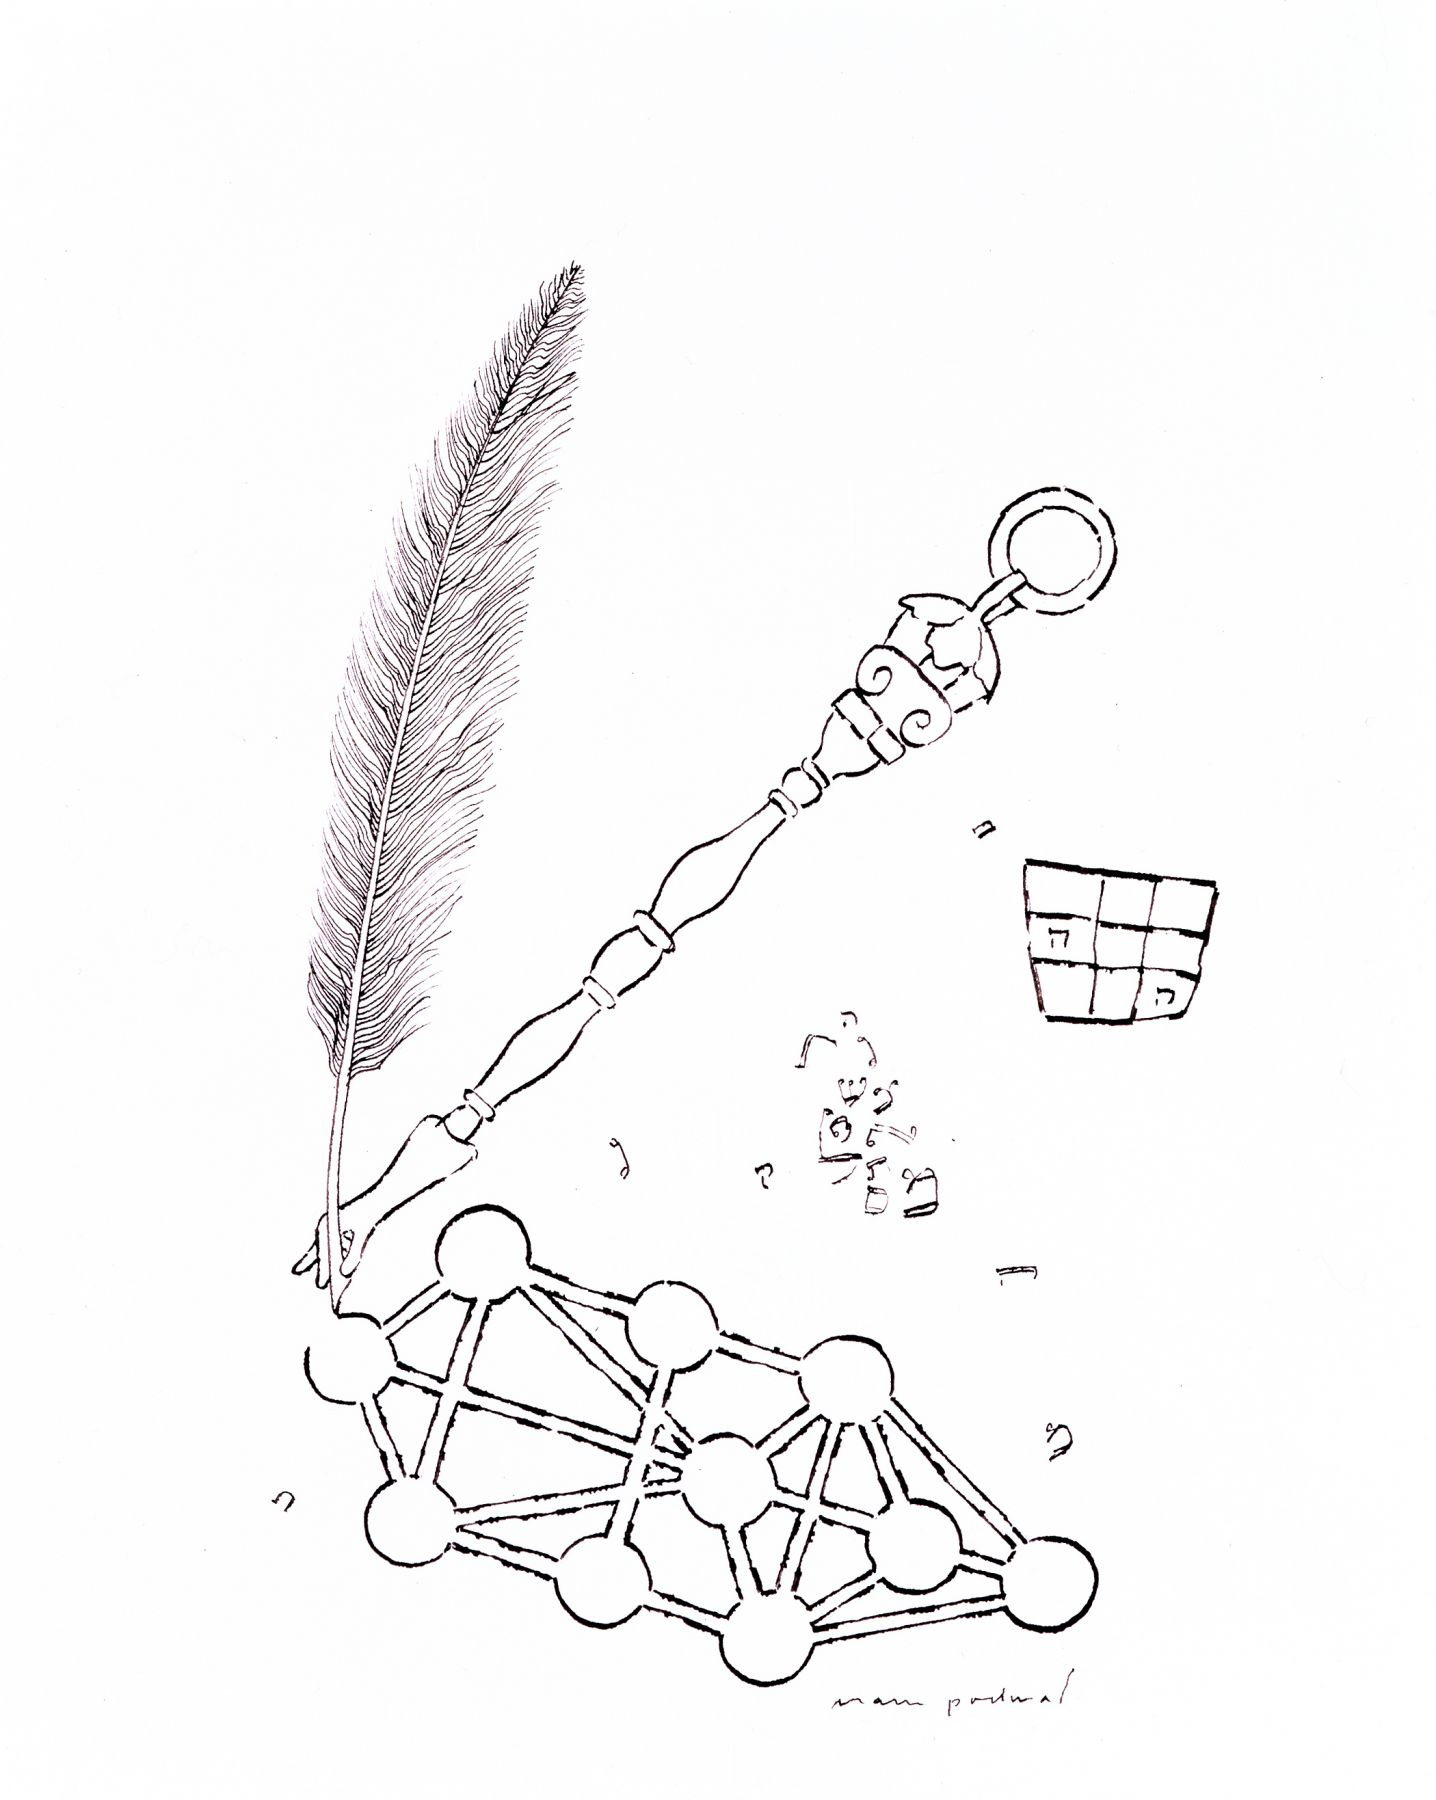 Mark Podwal, Kabbalah, 1997, ink on paper, 14 x 11 inches